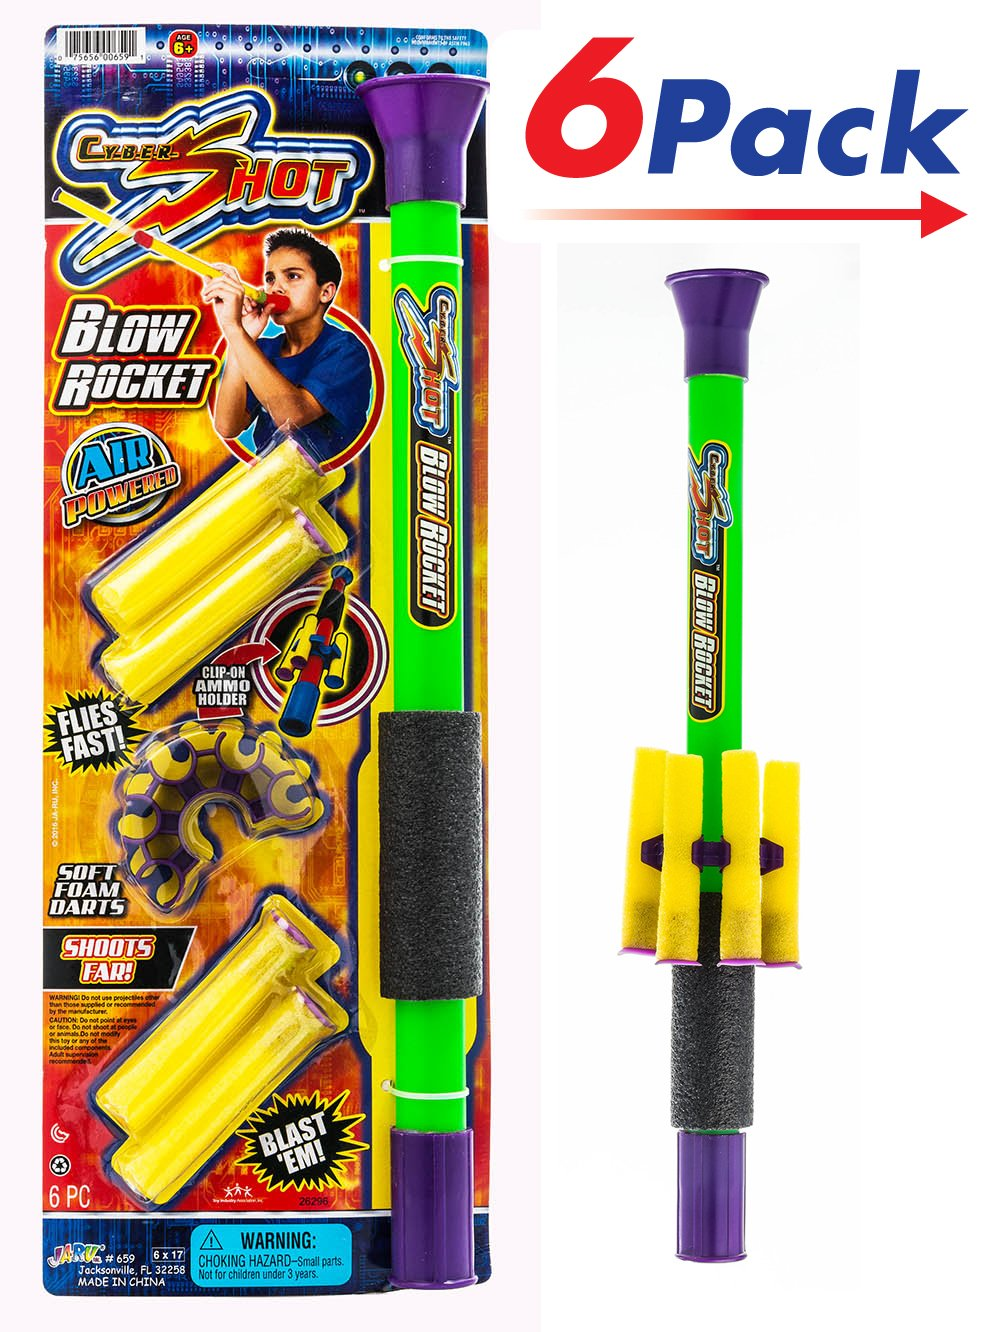 Foam Darts Blow Gun by 2Chill |Toy Gun for Kids Pack of 6 | Item #659